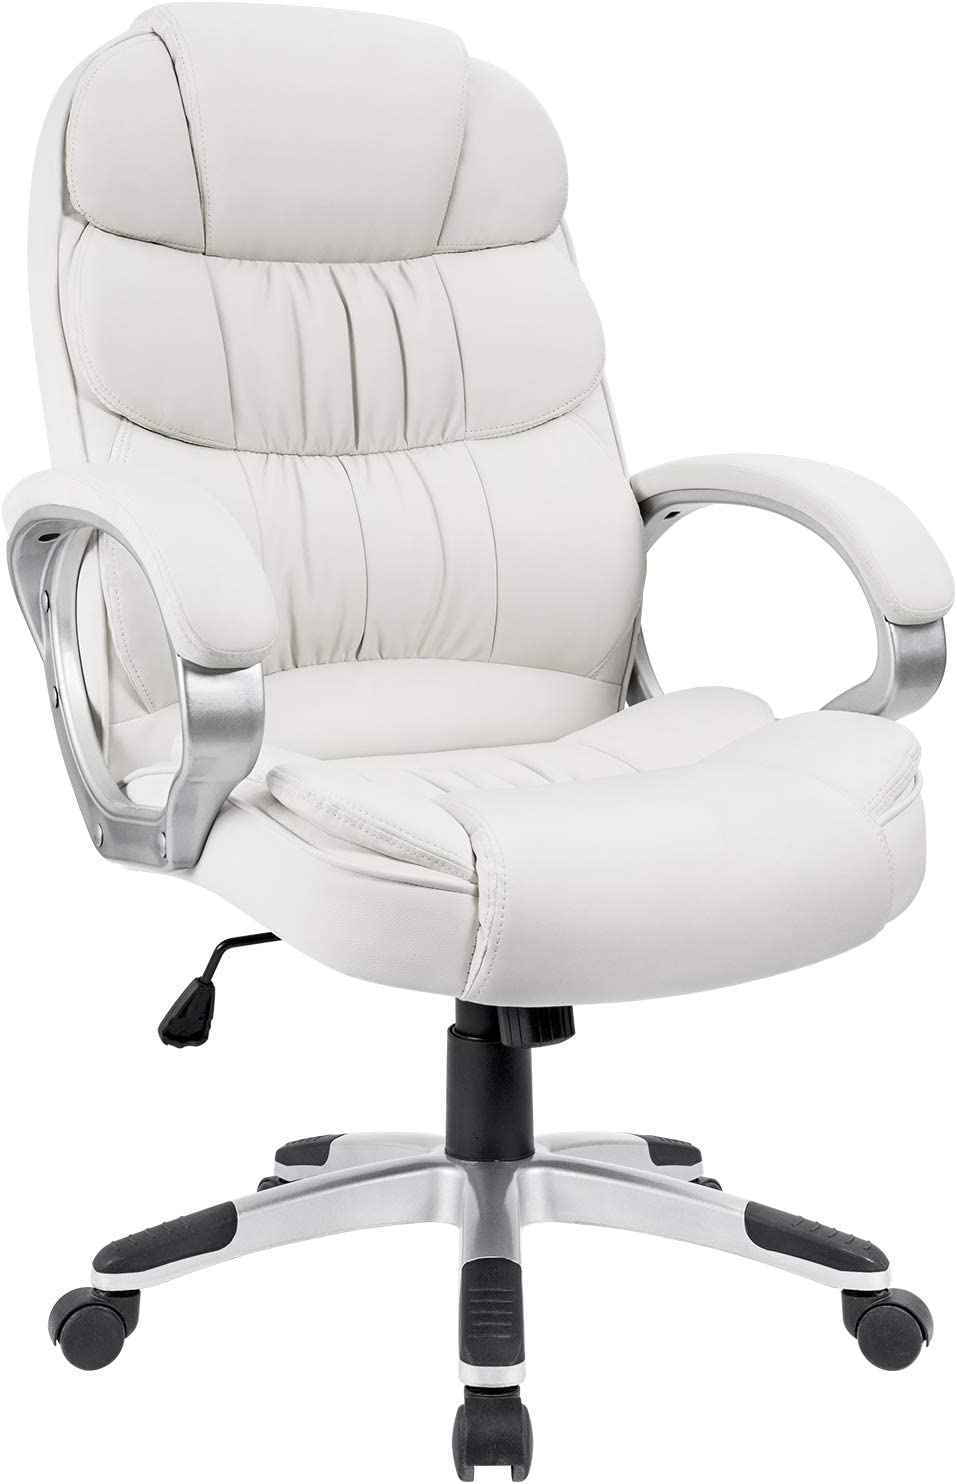 Homall Office Chair High Back Computer Chair Ergonomic Desk Chair, PU Leather Adjustable Height Modern Executive Swivel Task Chair with Padded Armrests and Lumbar Support White